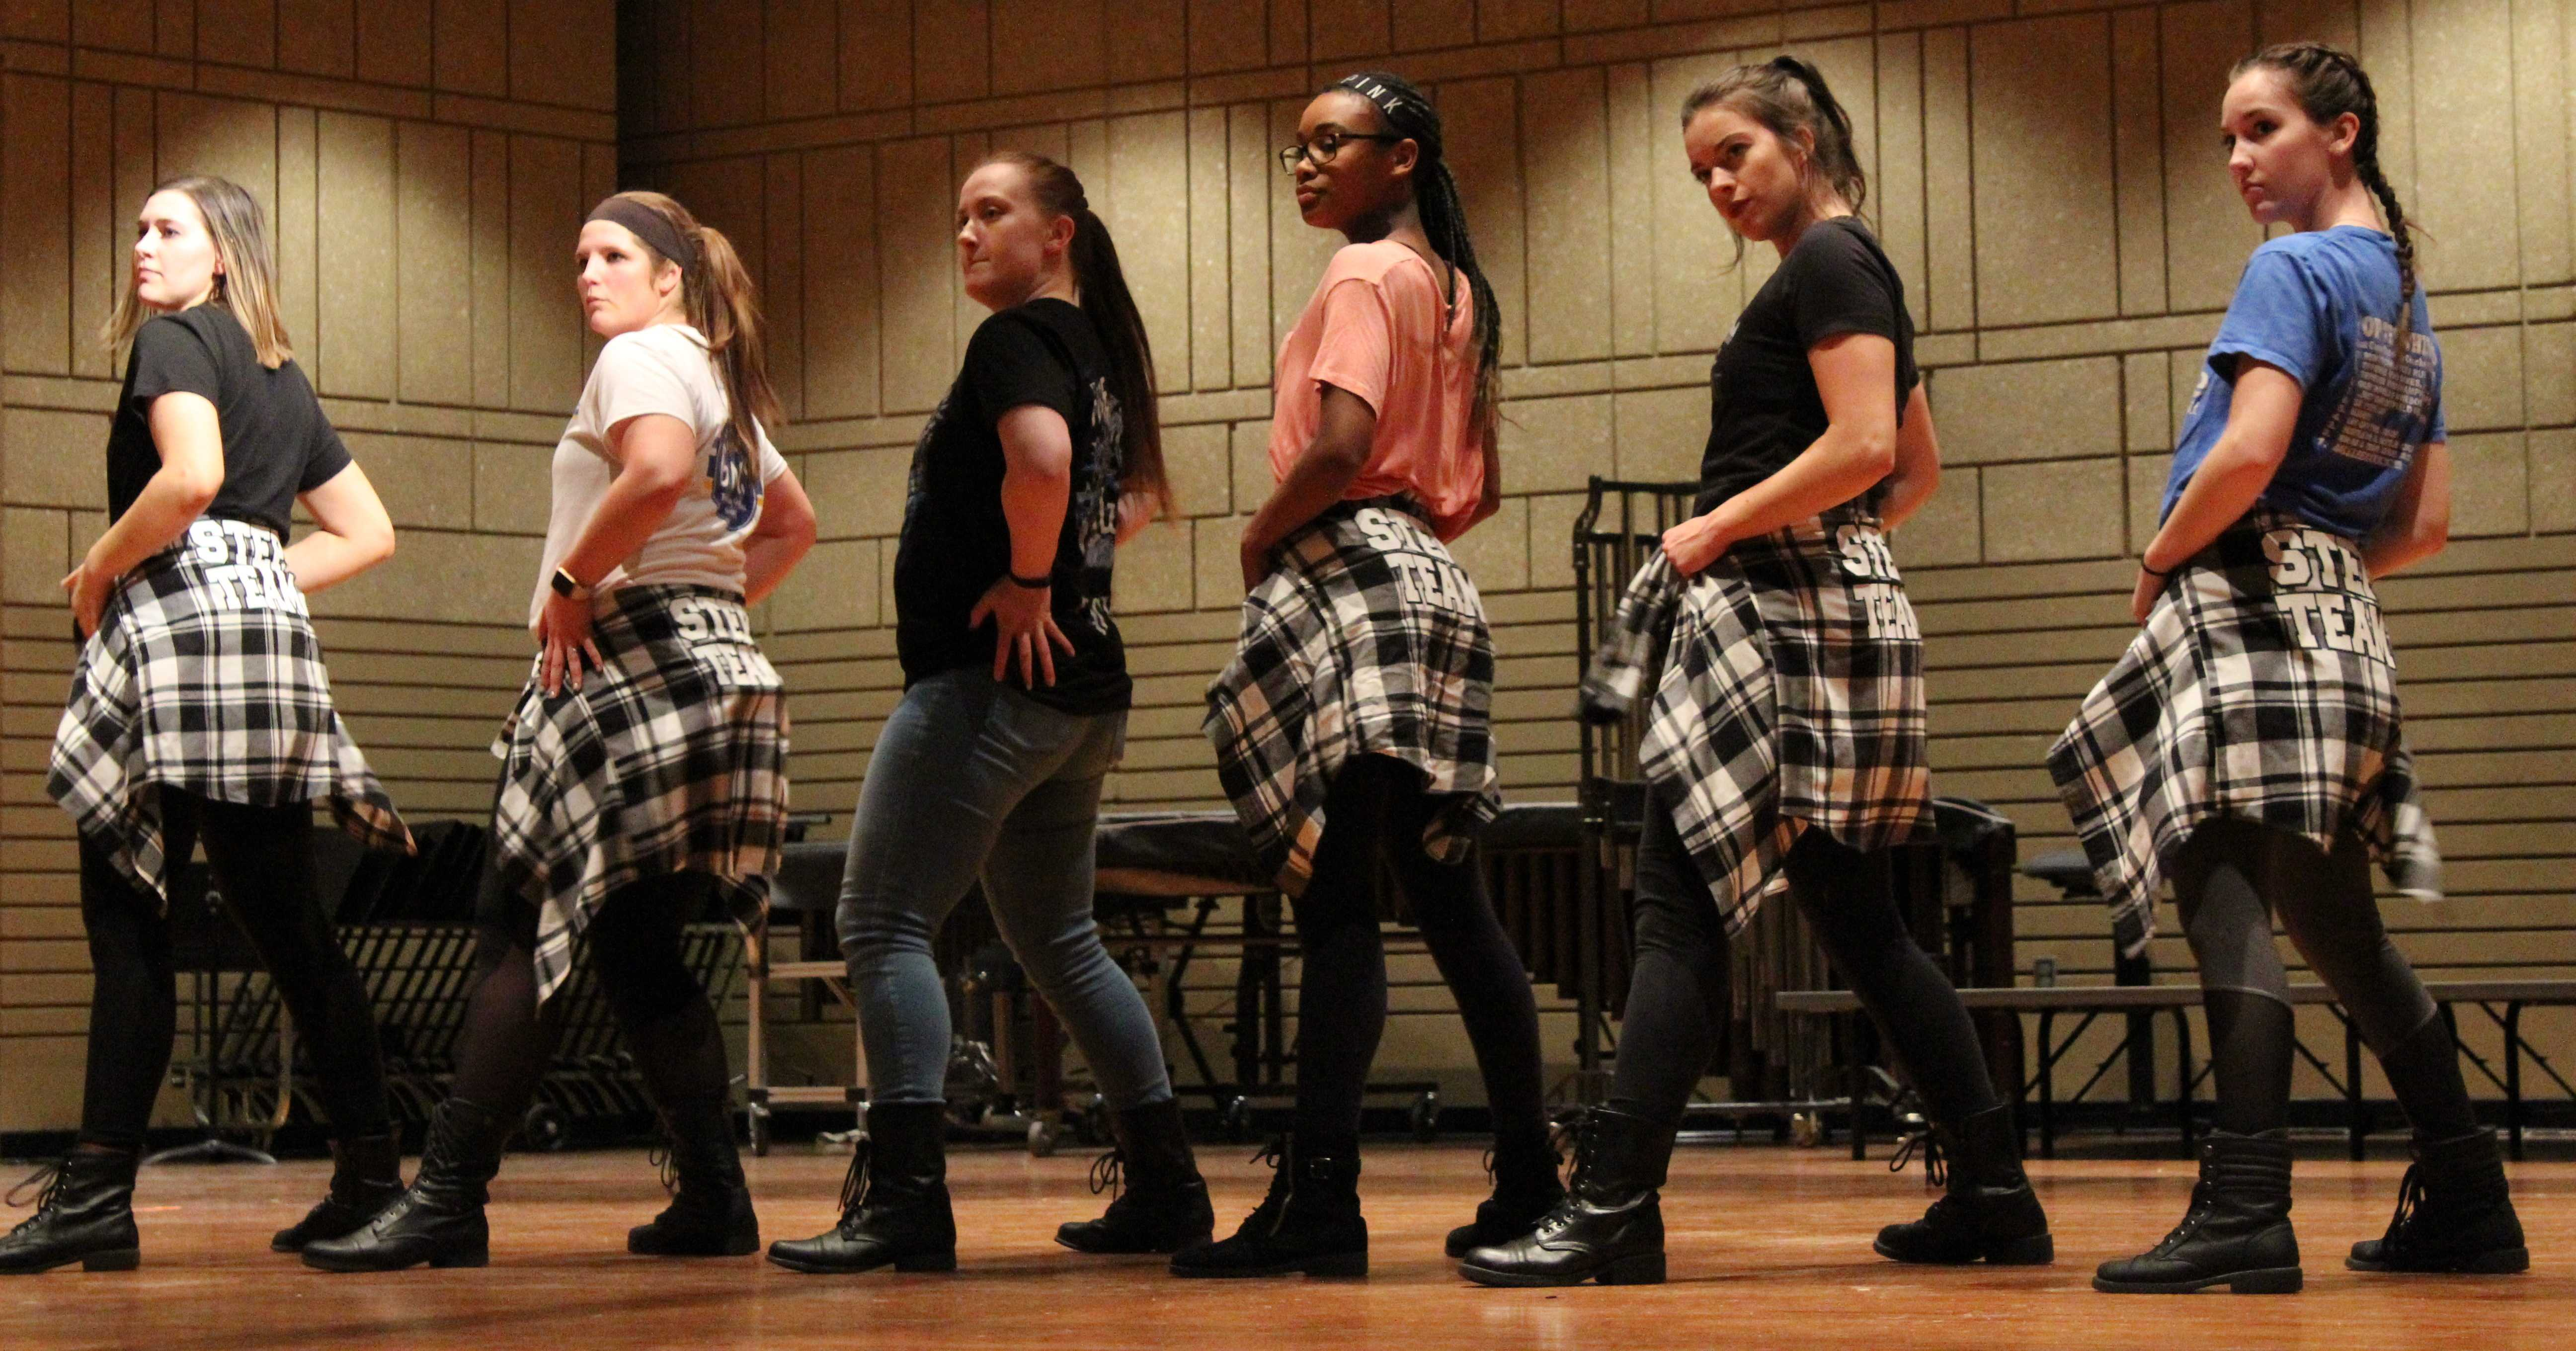 JENNY NGUYEN BSA members Alex Farber (left), Savannah Swenson, Jordan Barthold, Morea Nicols, Katelyn Britzman, Bailey Lear and Amber Alvery rehearse Jan. 31 in the PAC. BSA Step Show was performed Saturday, Feb. 4 in the PAC.